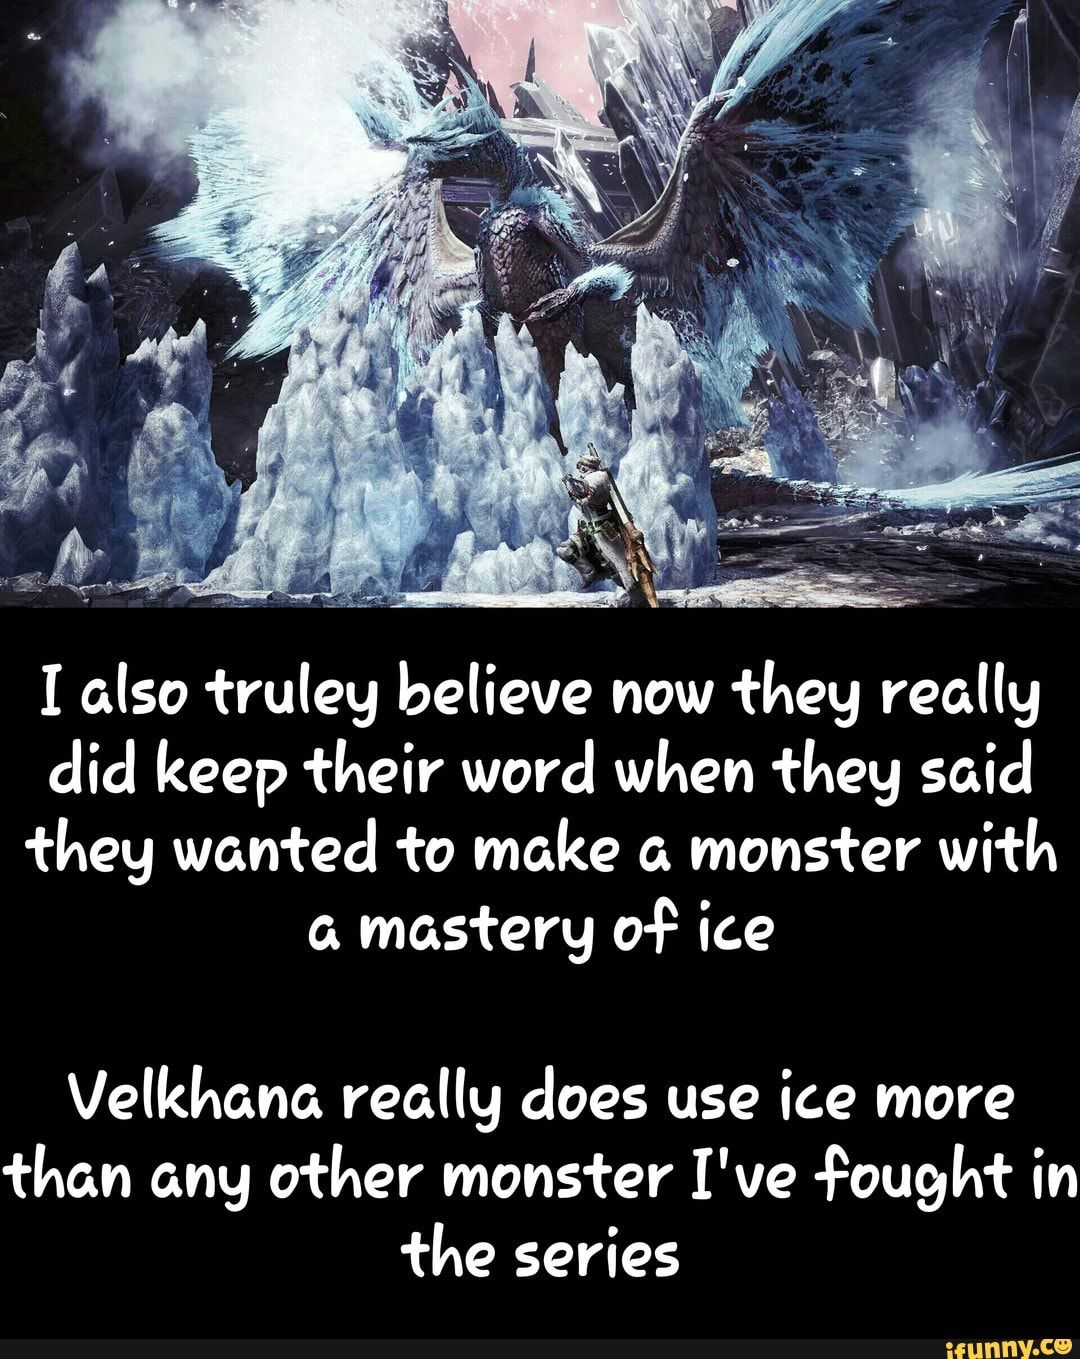 I Also Truley Believe Now They Really Did Keep Their Word When They Said They Wanted To Make A Monster With Velkhana Really Does Use Ice More Than Any Other Mon